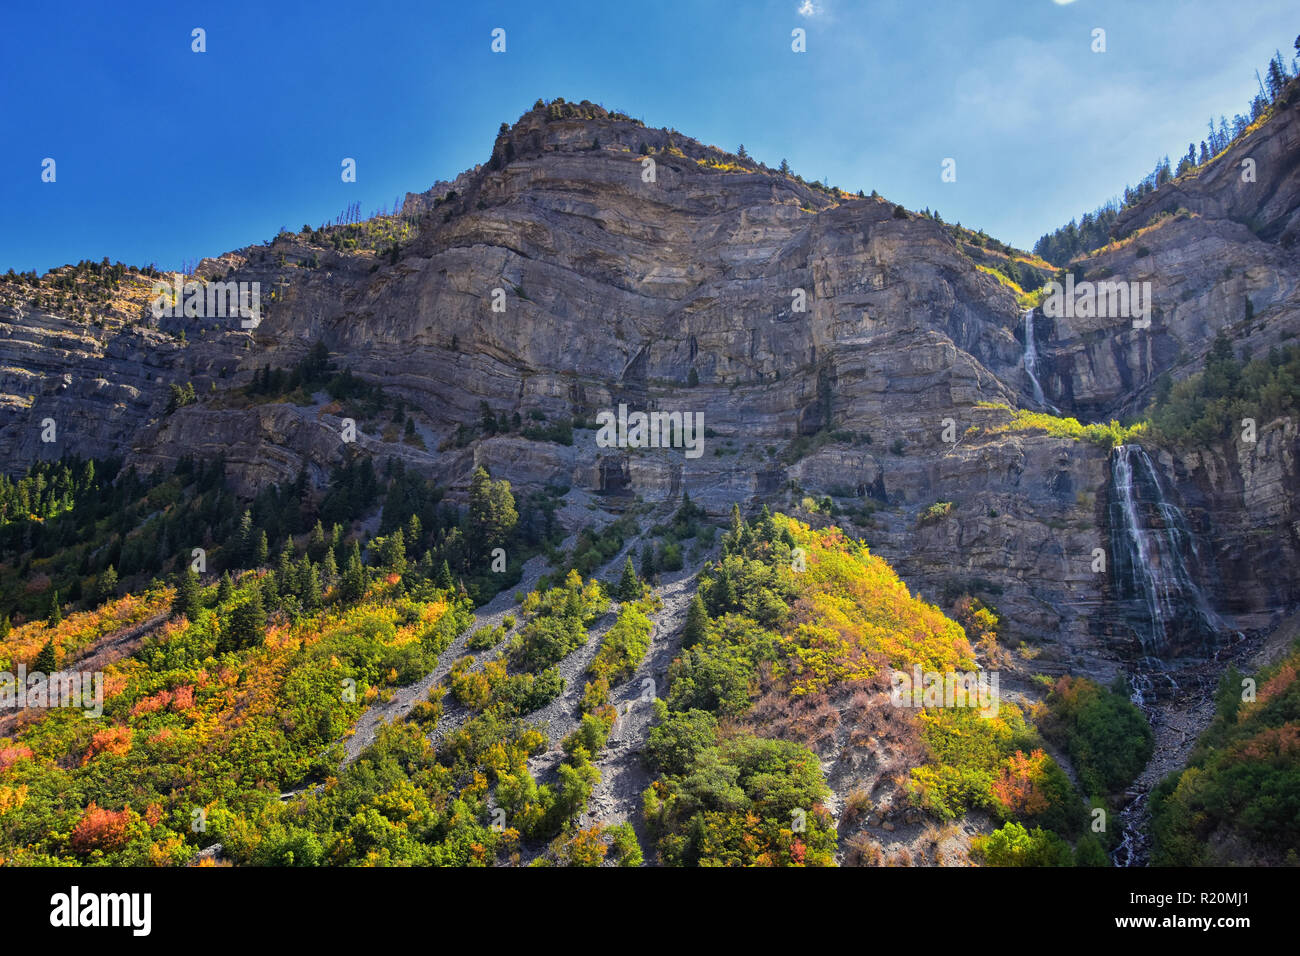 Bridal Veil Falls is a 607-foot-tall (185 meters) double cataract waterfall in the south end of Provo Canyon, close to Highway US189 in Utah, United S - Stock Image